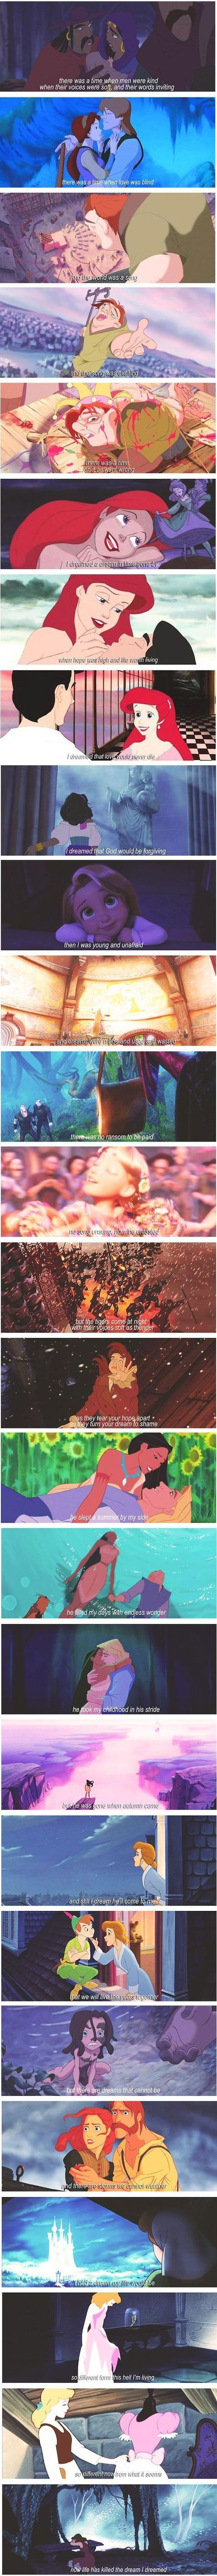 Love this song as love Disney!